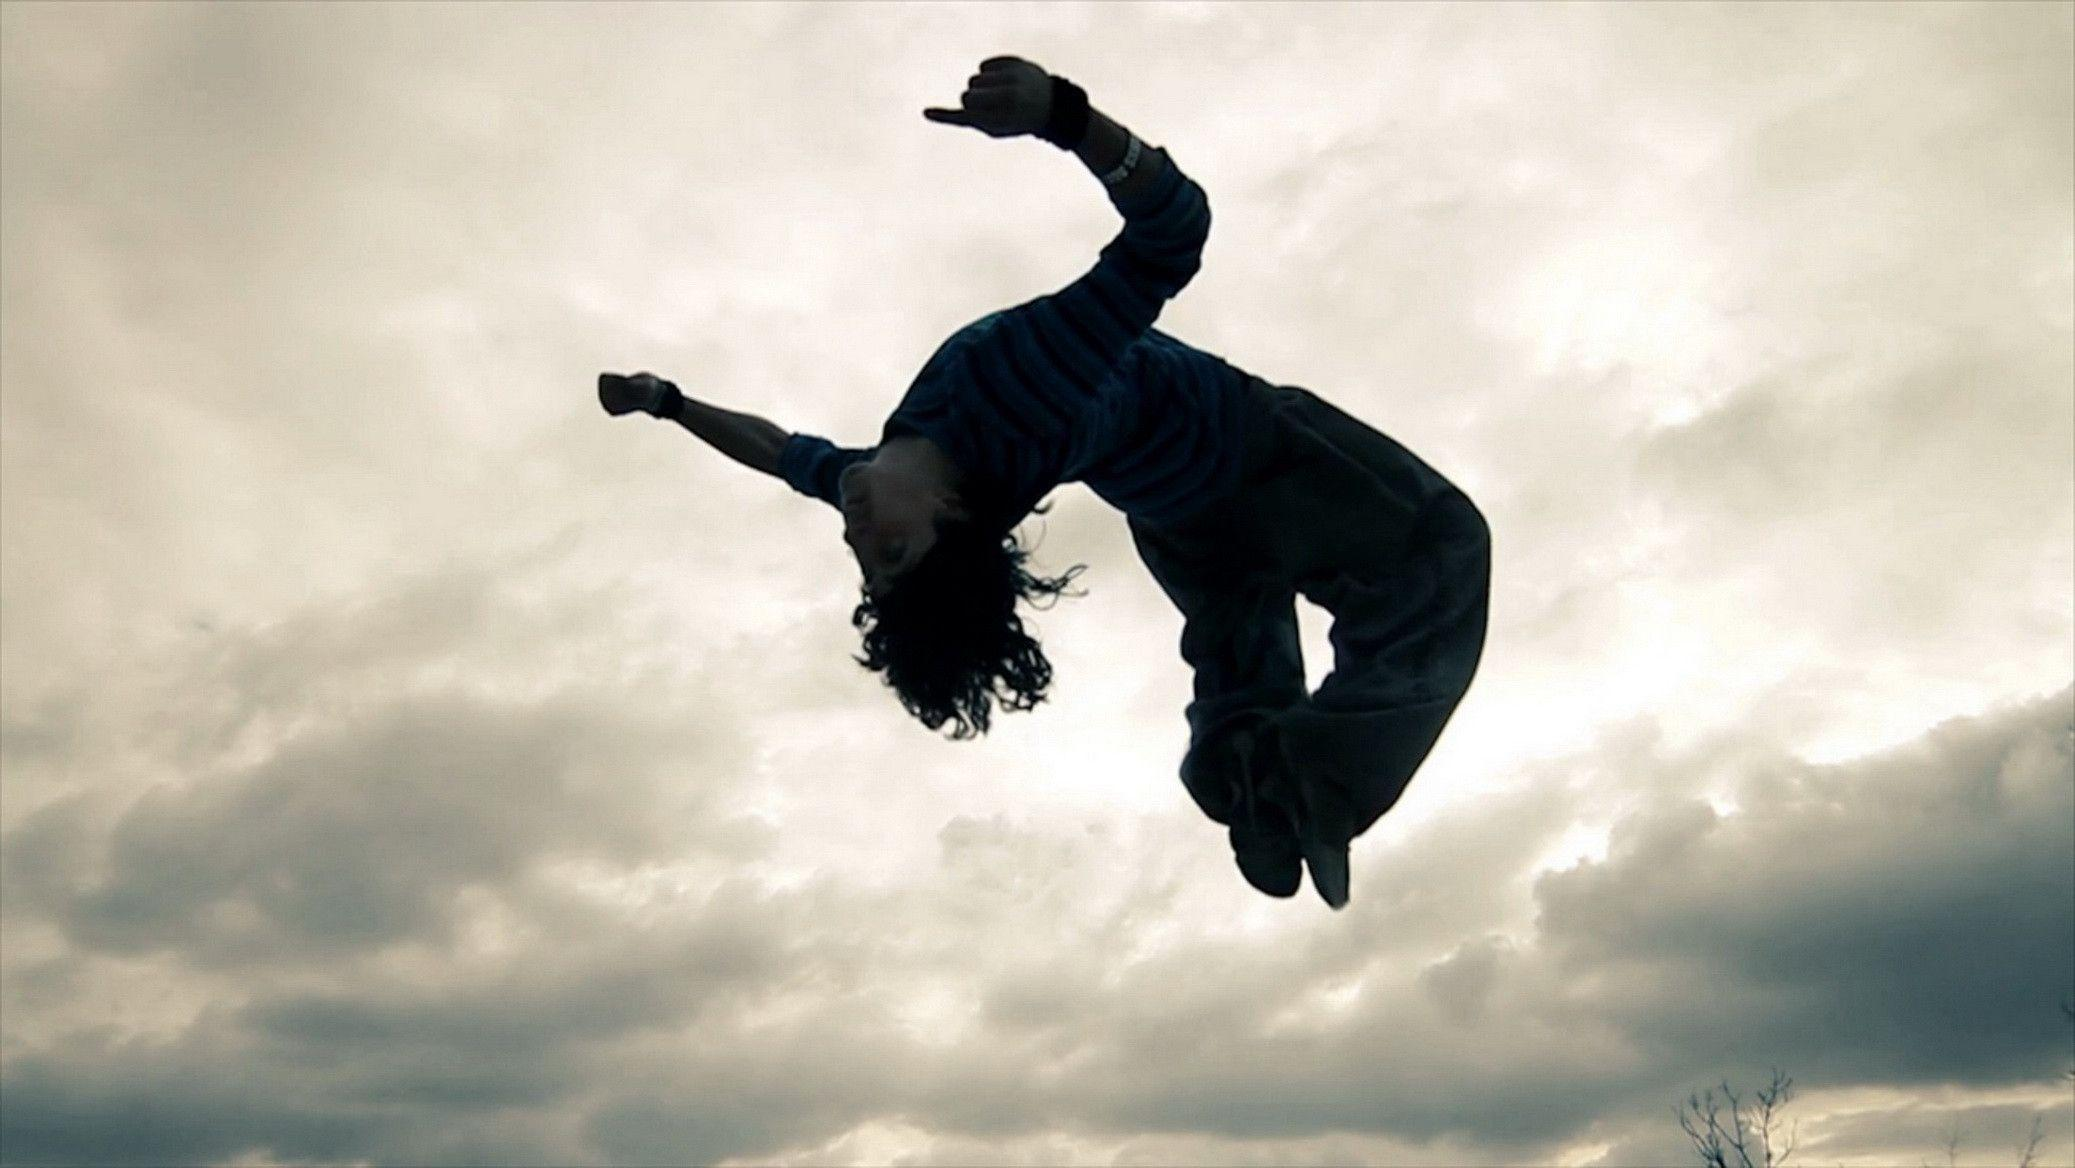 Parkour Flying from Window, Sports Wallpaper, hd phone wallpapers